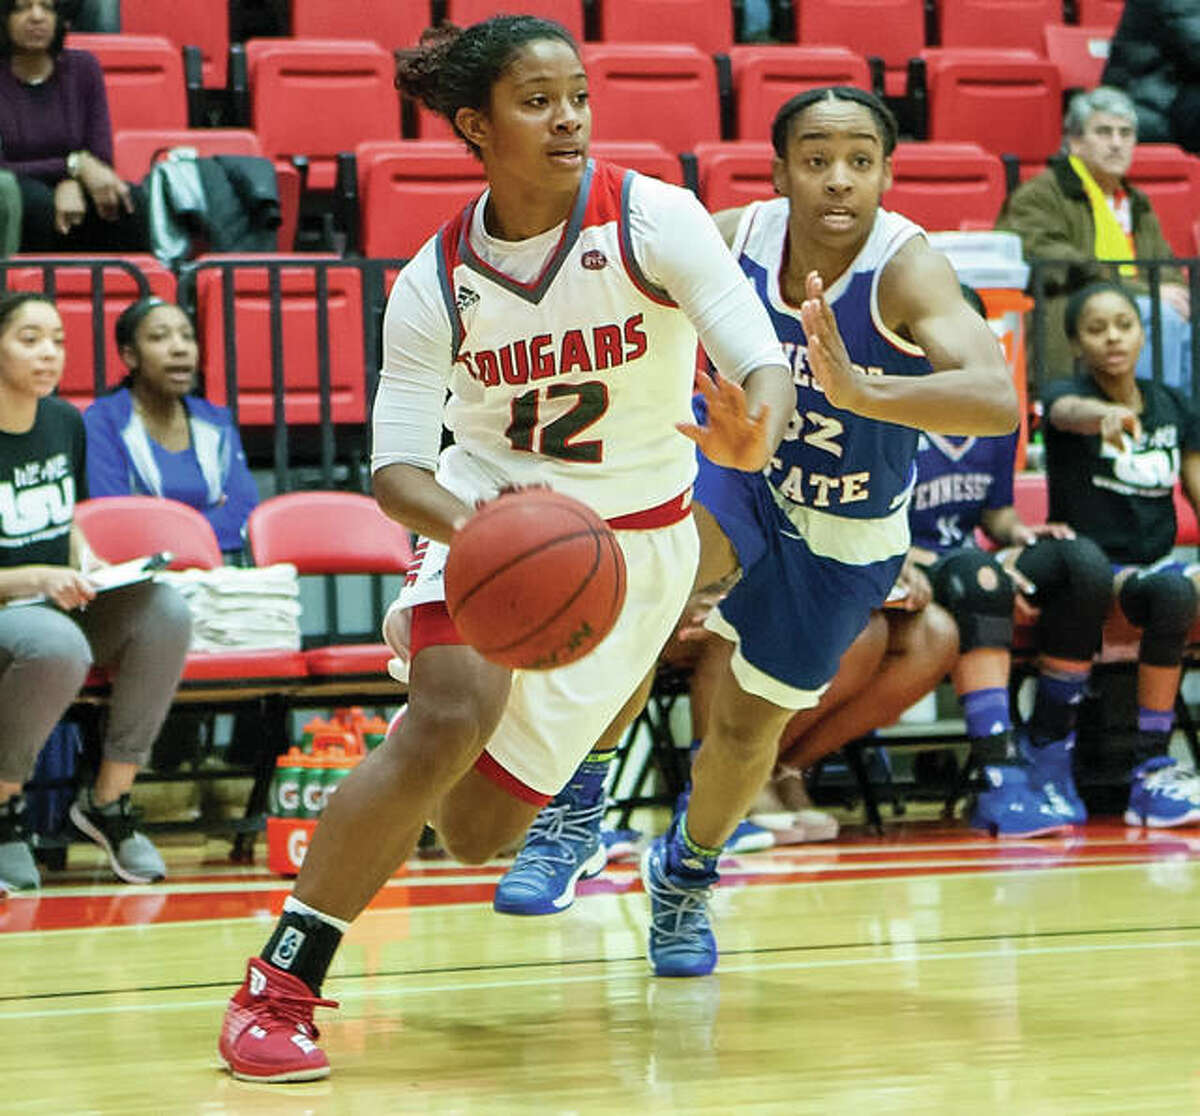 SIUE's Lauren White (left), shown driving past a Tennessee State defender during a Jan. 13 game at Vadalabene Center in Edwardsville, was one of three Cougars scoring in double figures Thursday in Nashville. The Cougars won to sweep their two OVC dates with Tennessee State.